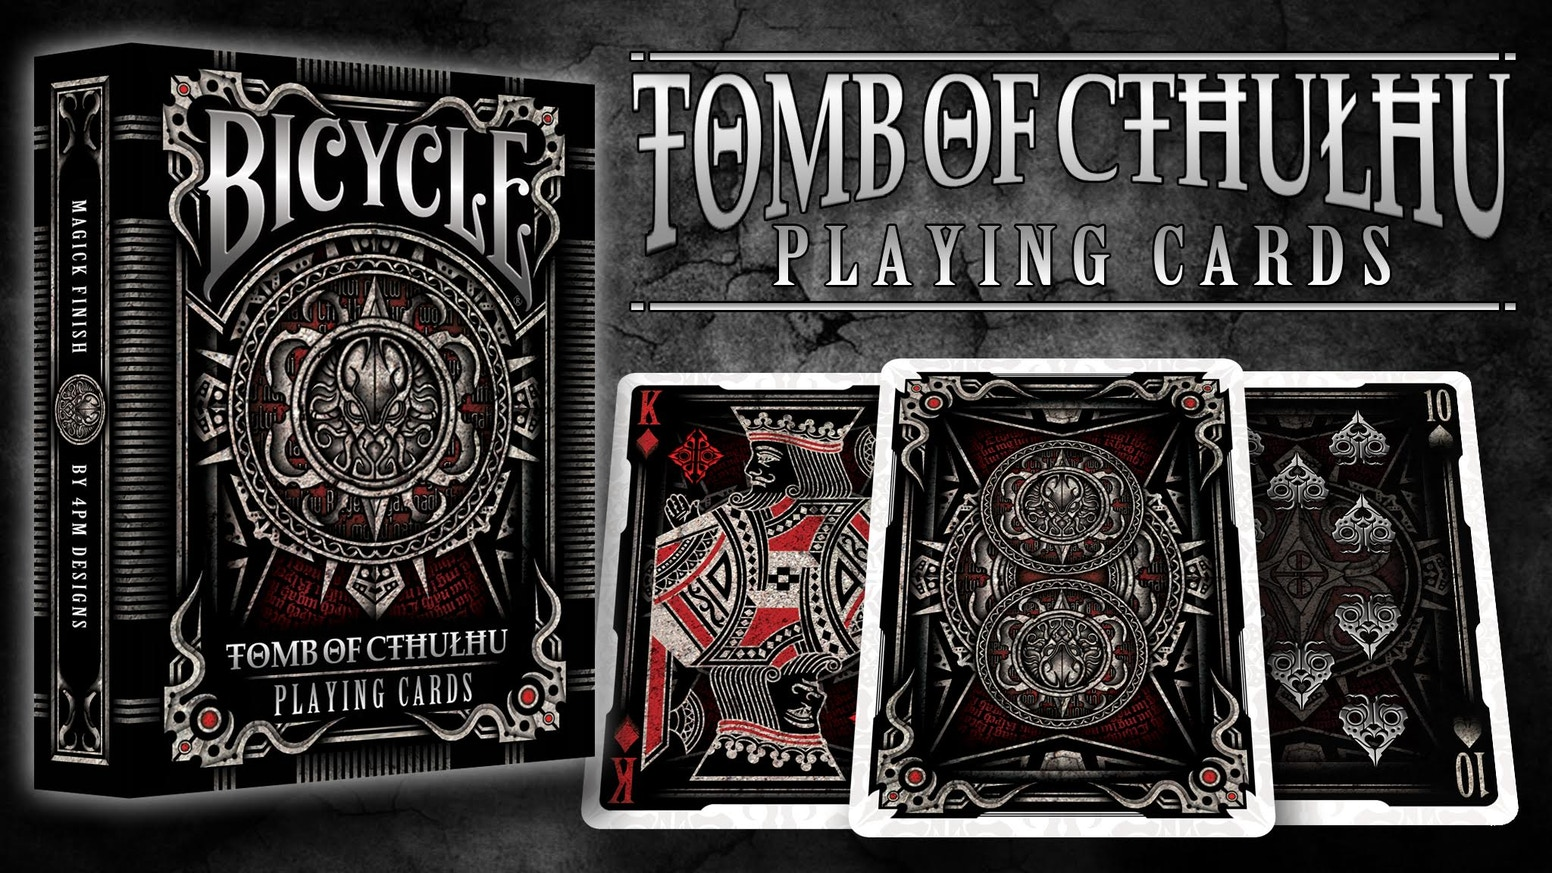 A new deck designed by 4PM Designs on the famous Cthulhu theme and successor of Bicycle Necronomicon Deck.